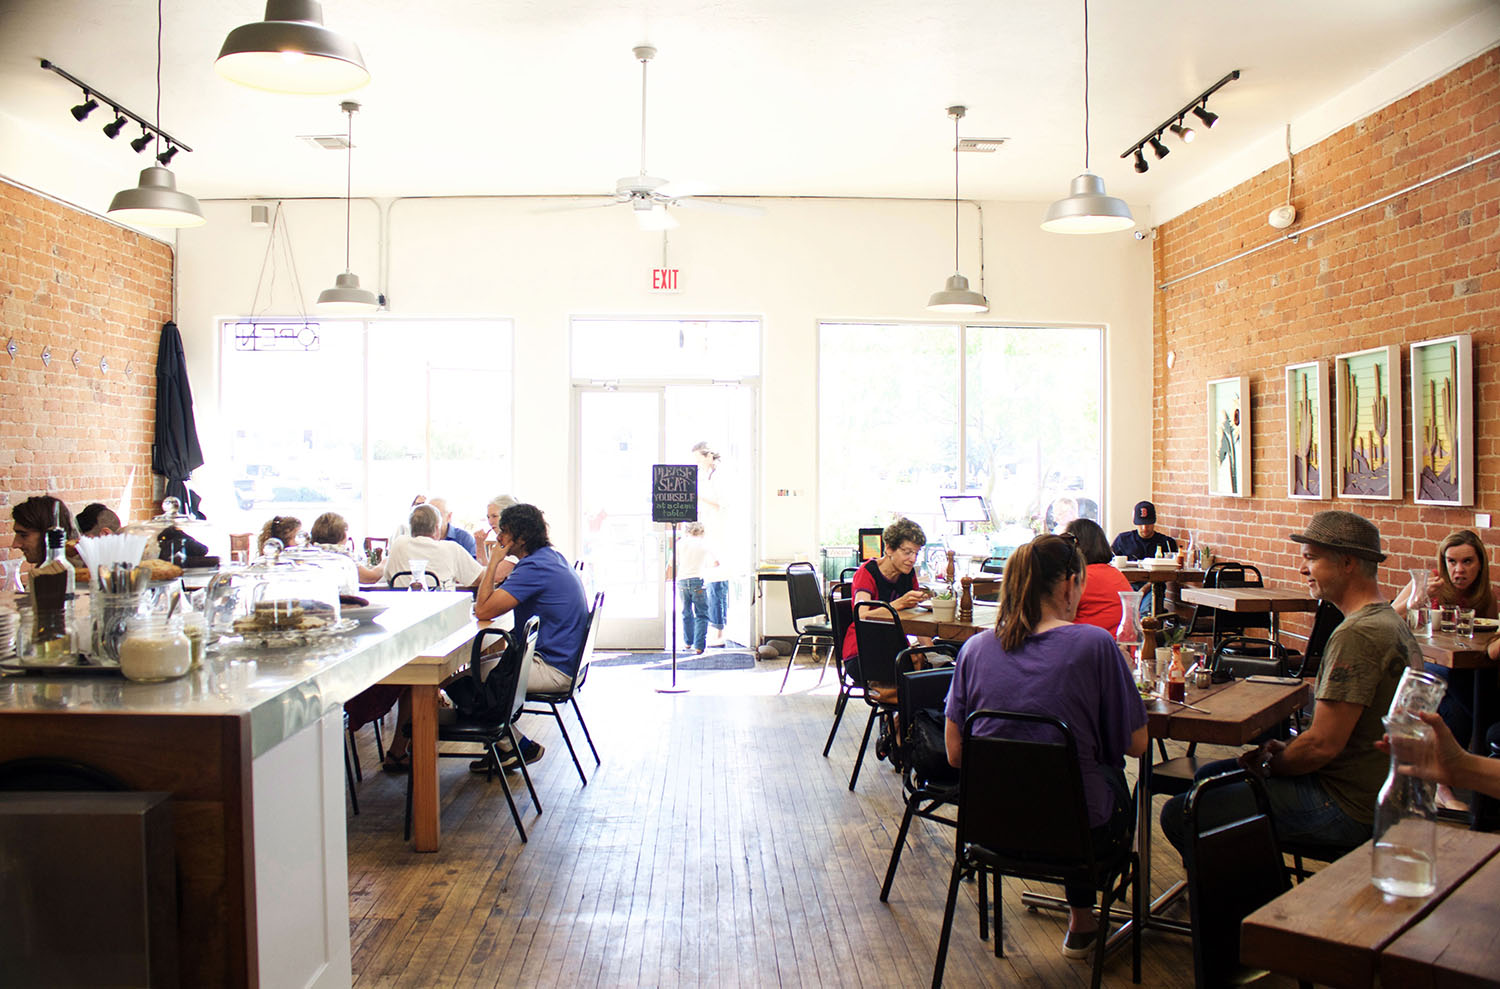 Within walking distance of downtown Tucson's most desireable neighborhoods but away from the bustle of Congress Street, 5 Points Market and Restaurant filled a need in its community for a local restaurant with delicious and conscientiously made food.